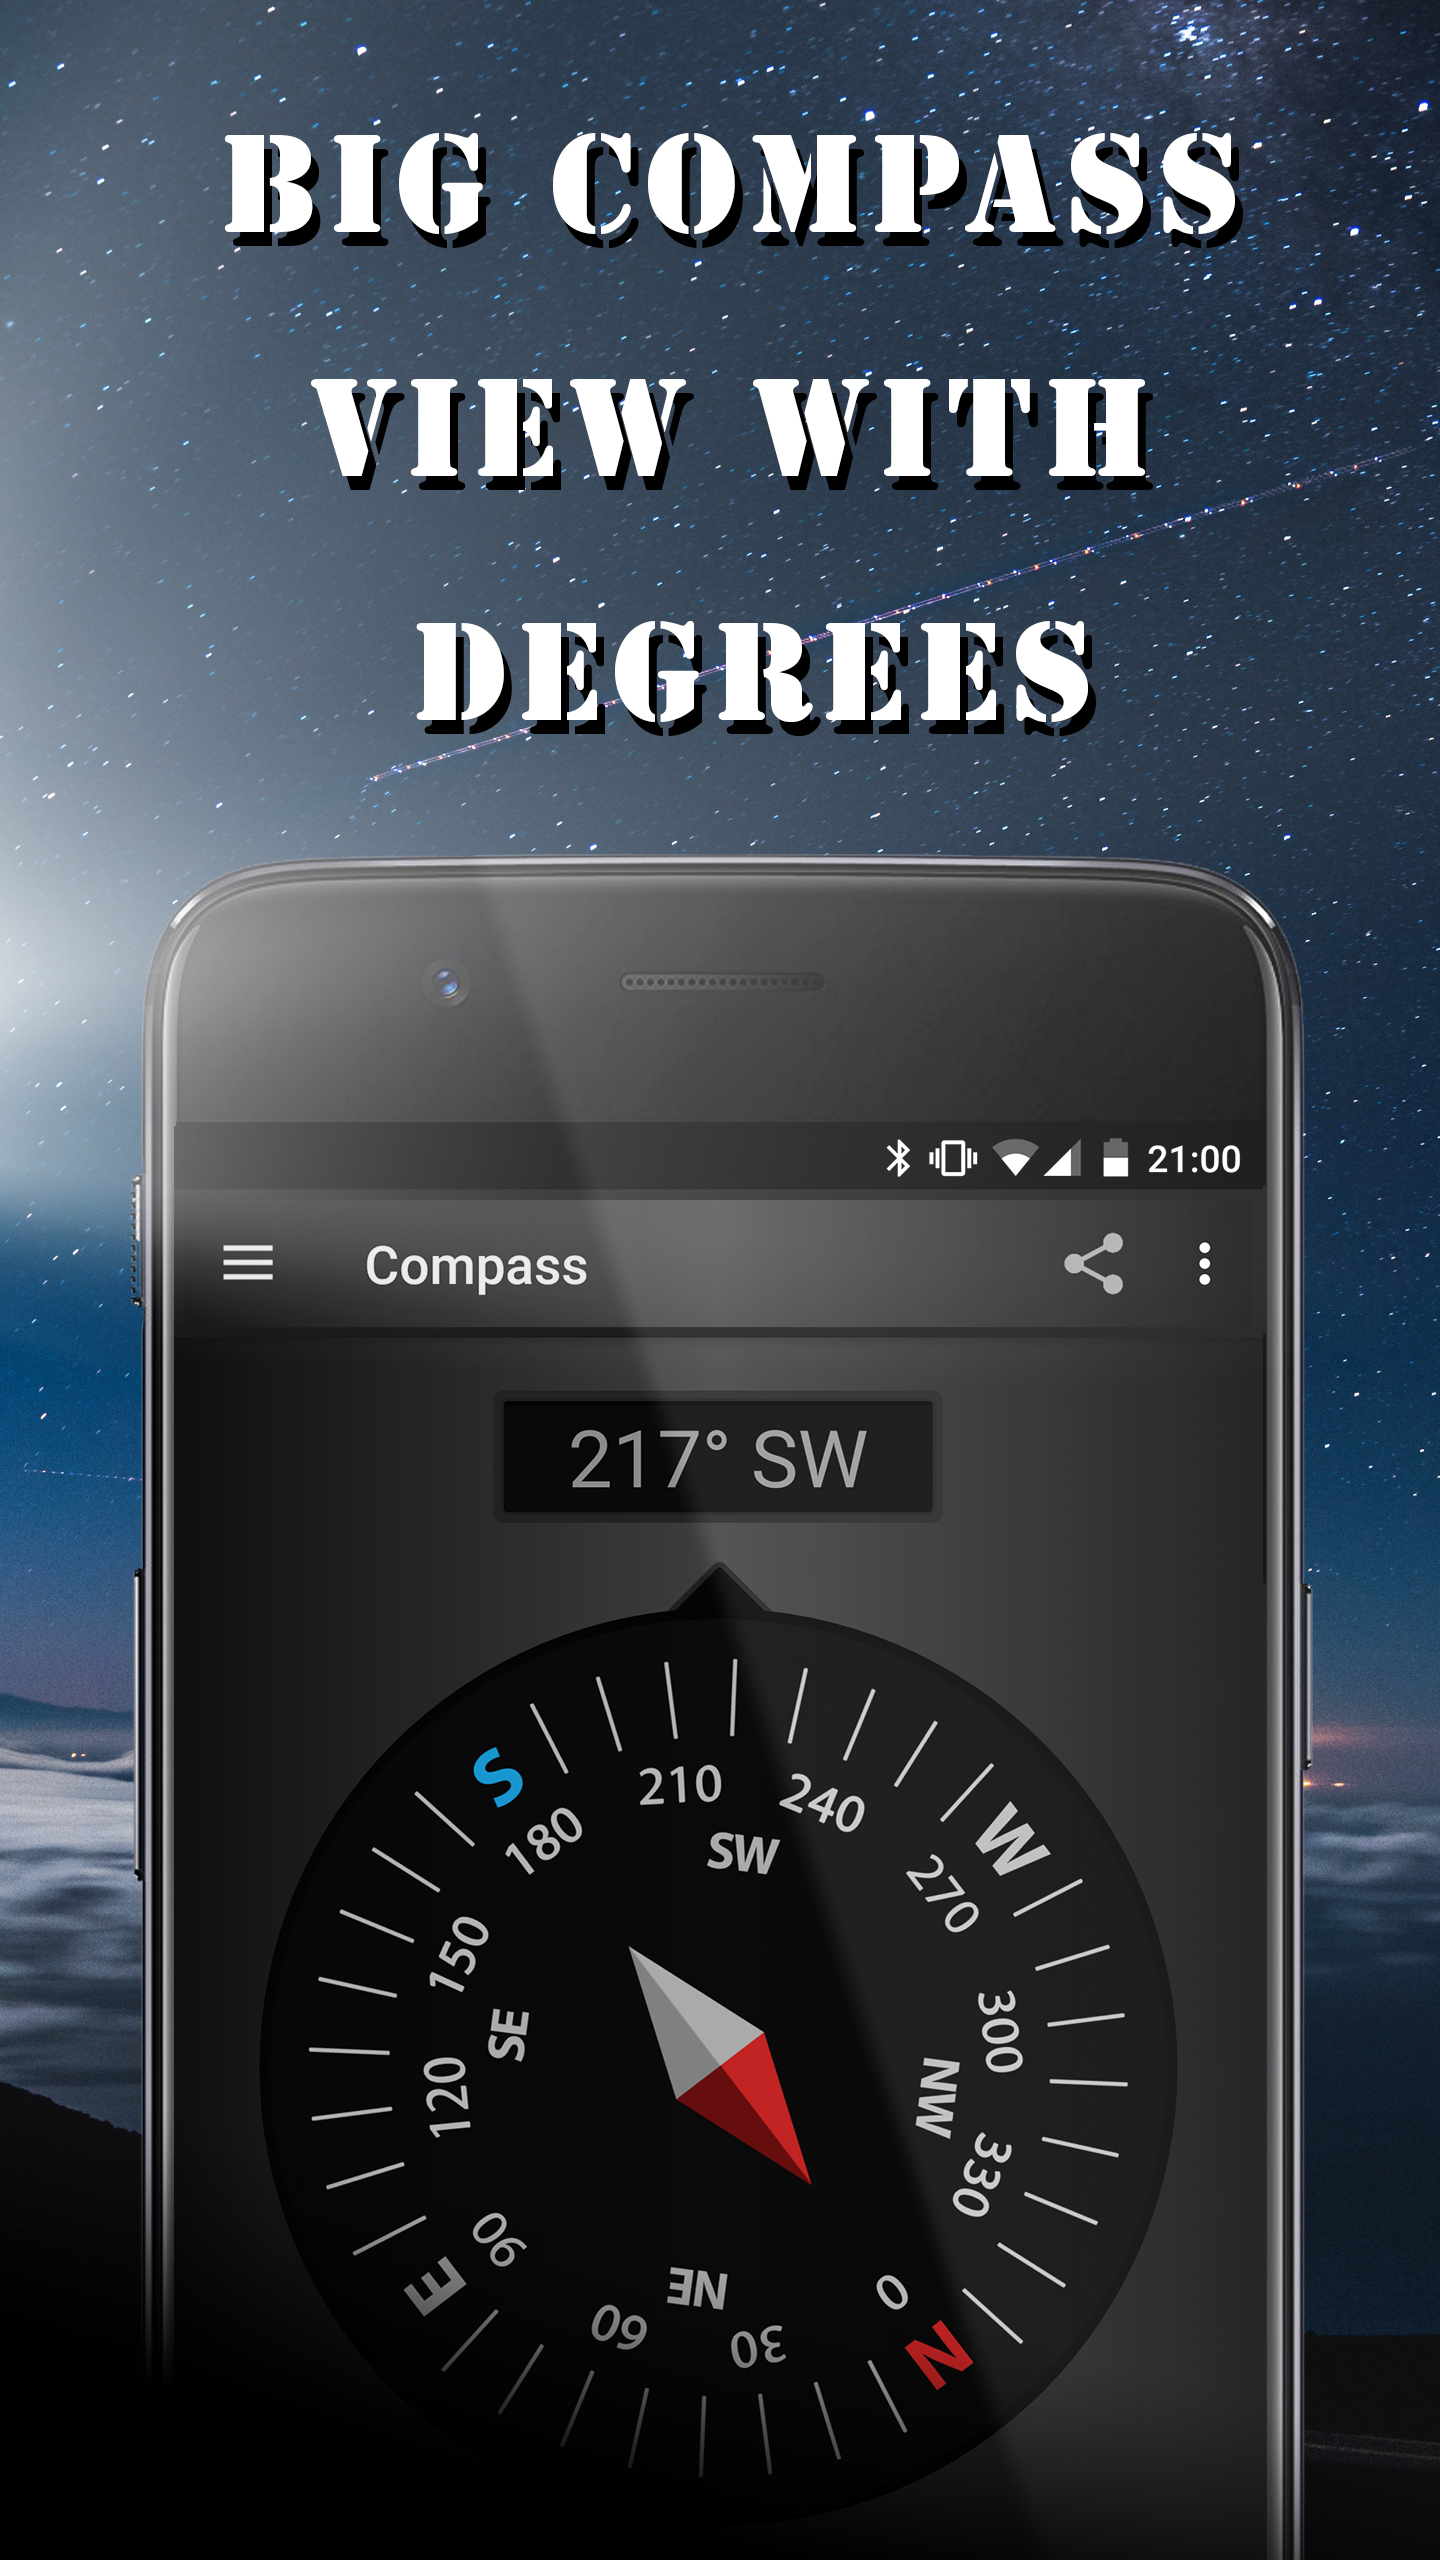 big compass view with degrees